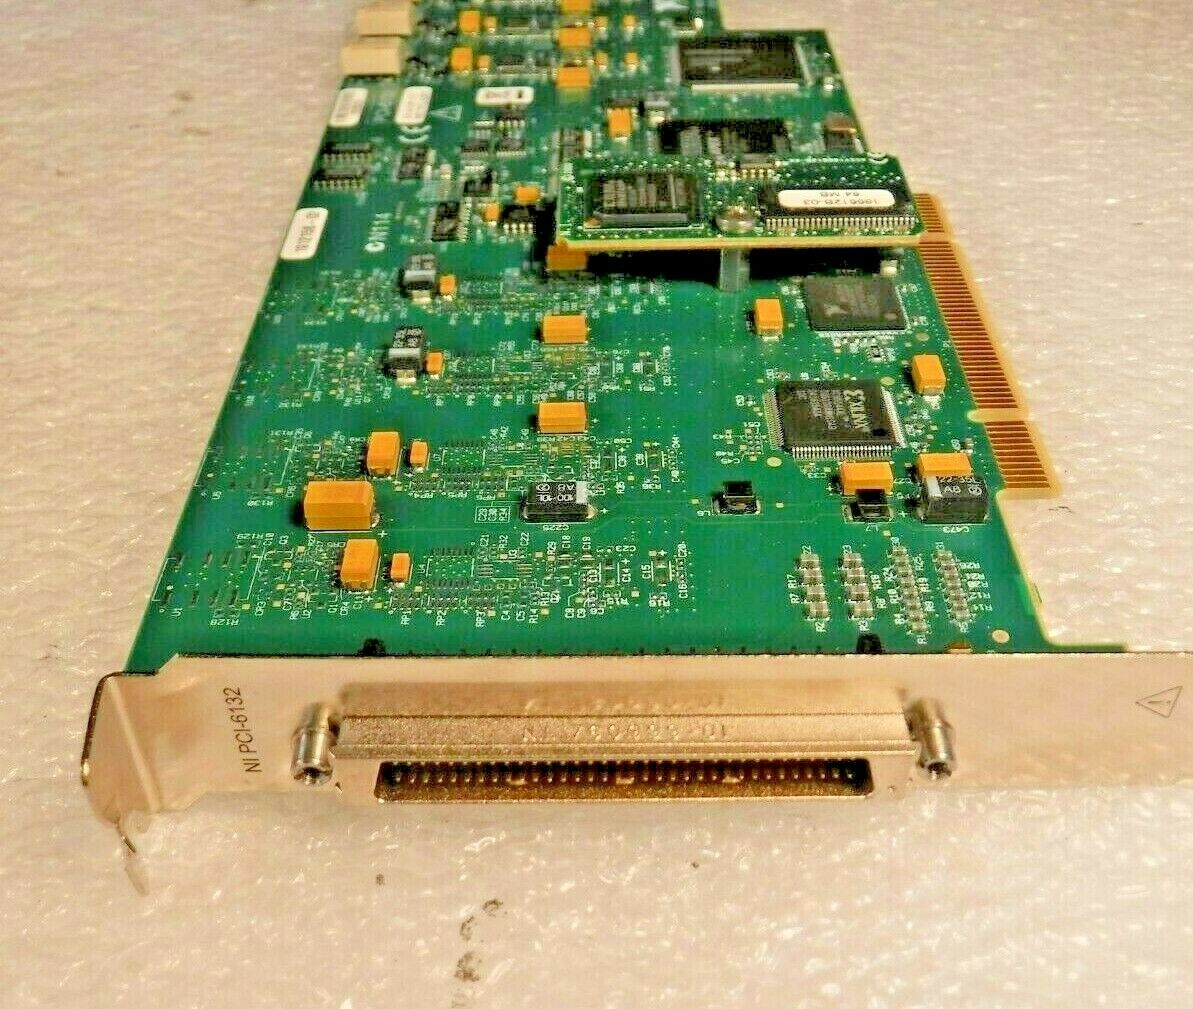 ASA M1 Waveform Tools with Subscription for National Instruments PCI-6122